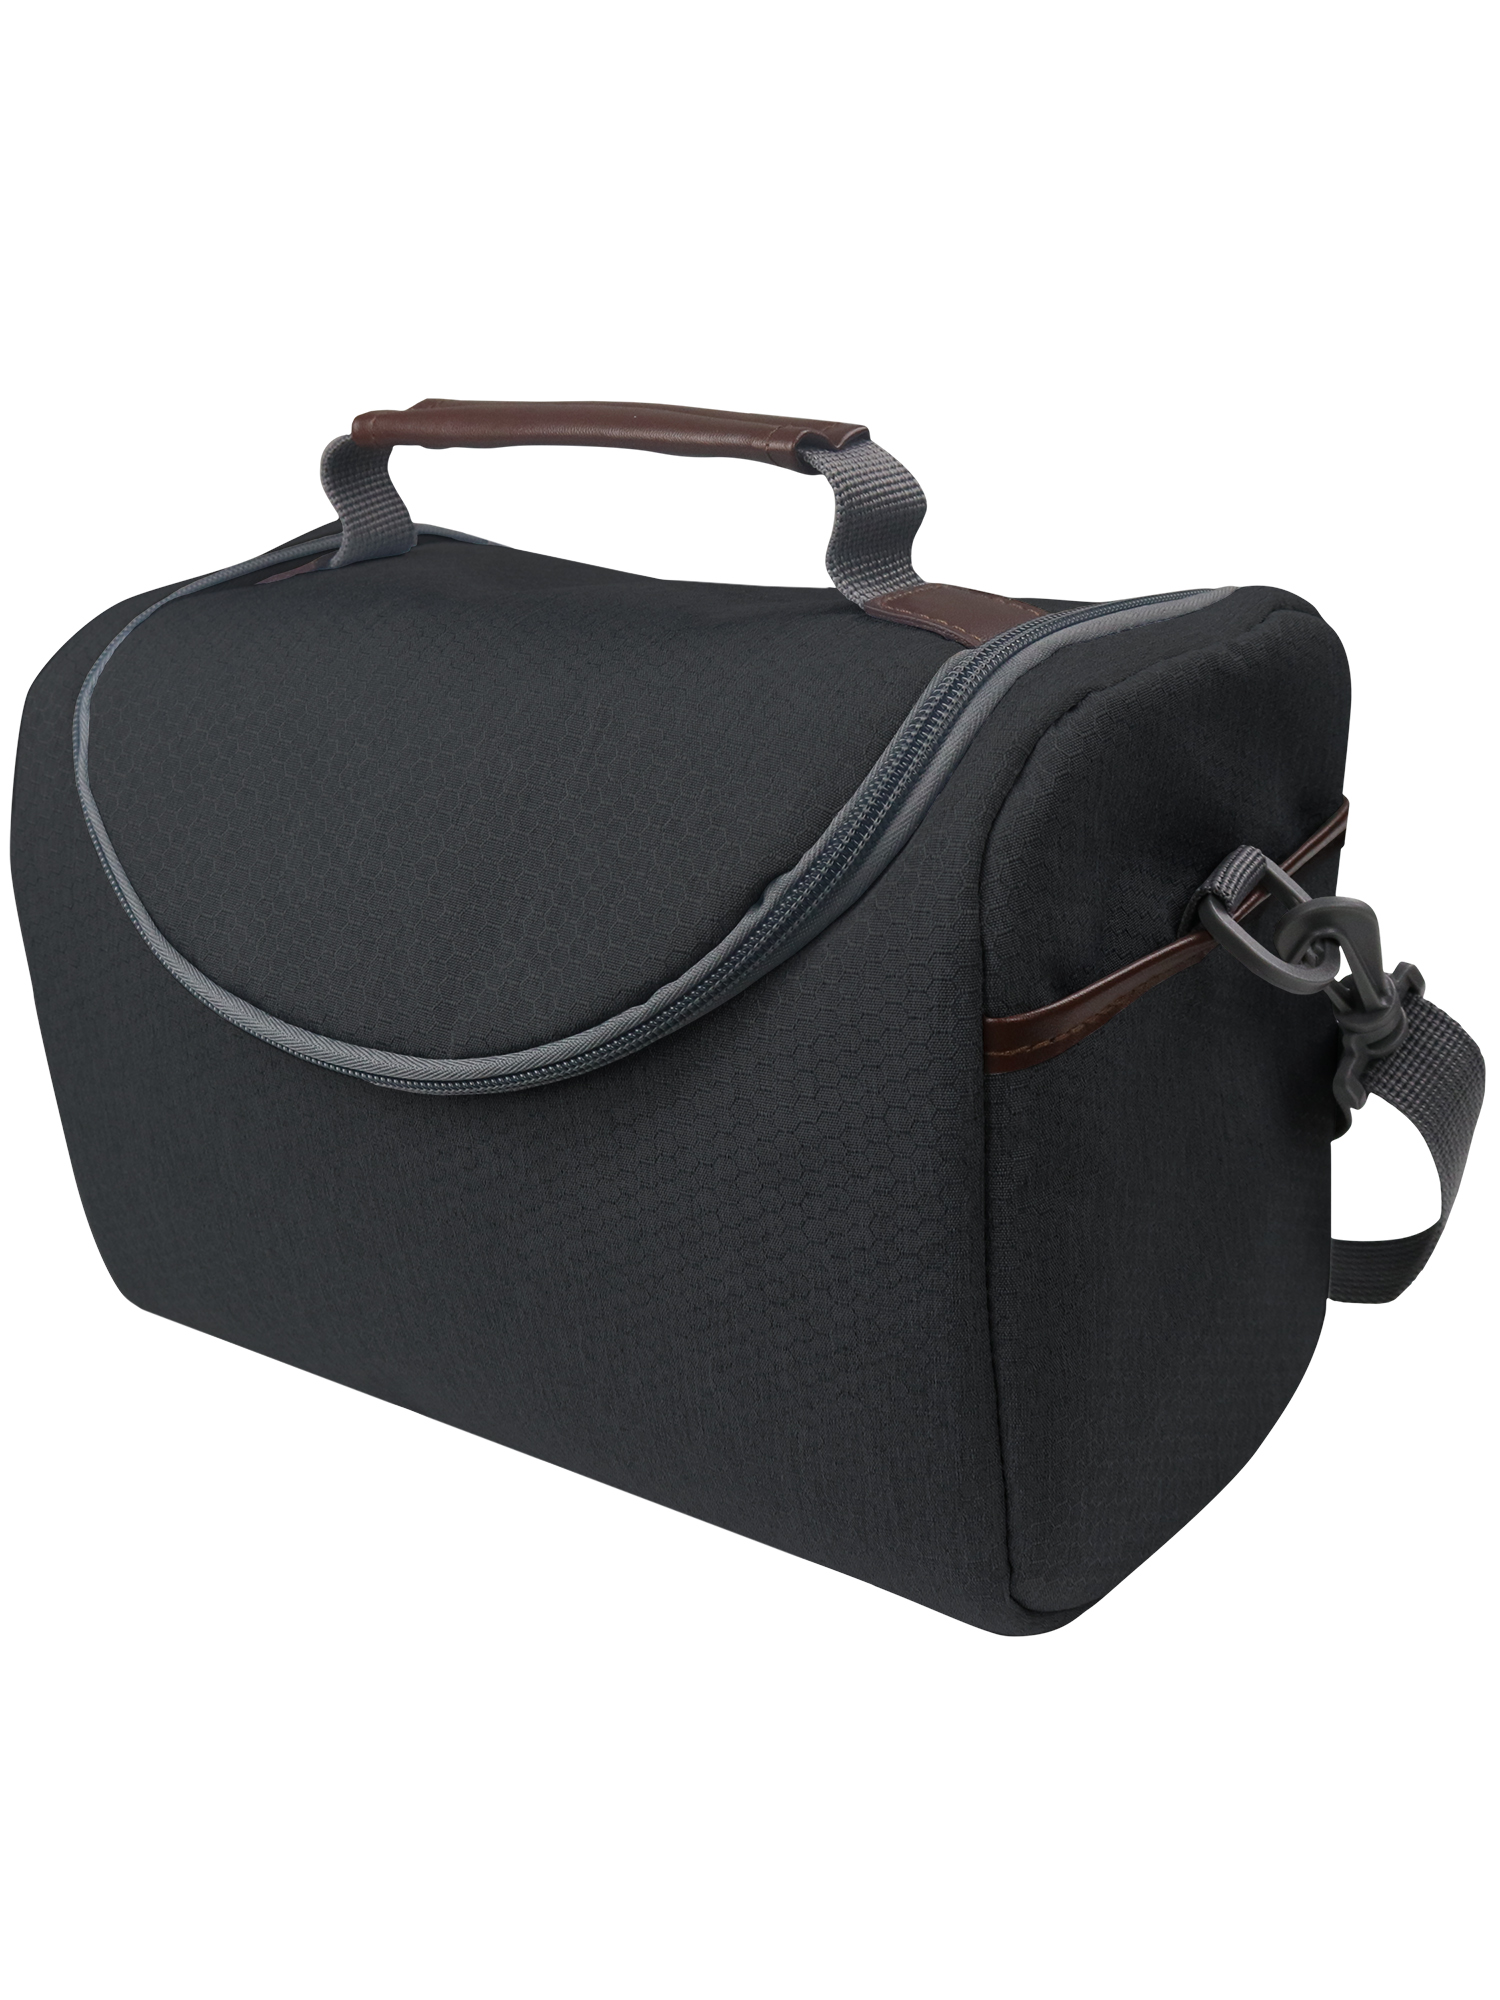 Mainstays Heritage Lunch Bag, Black